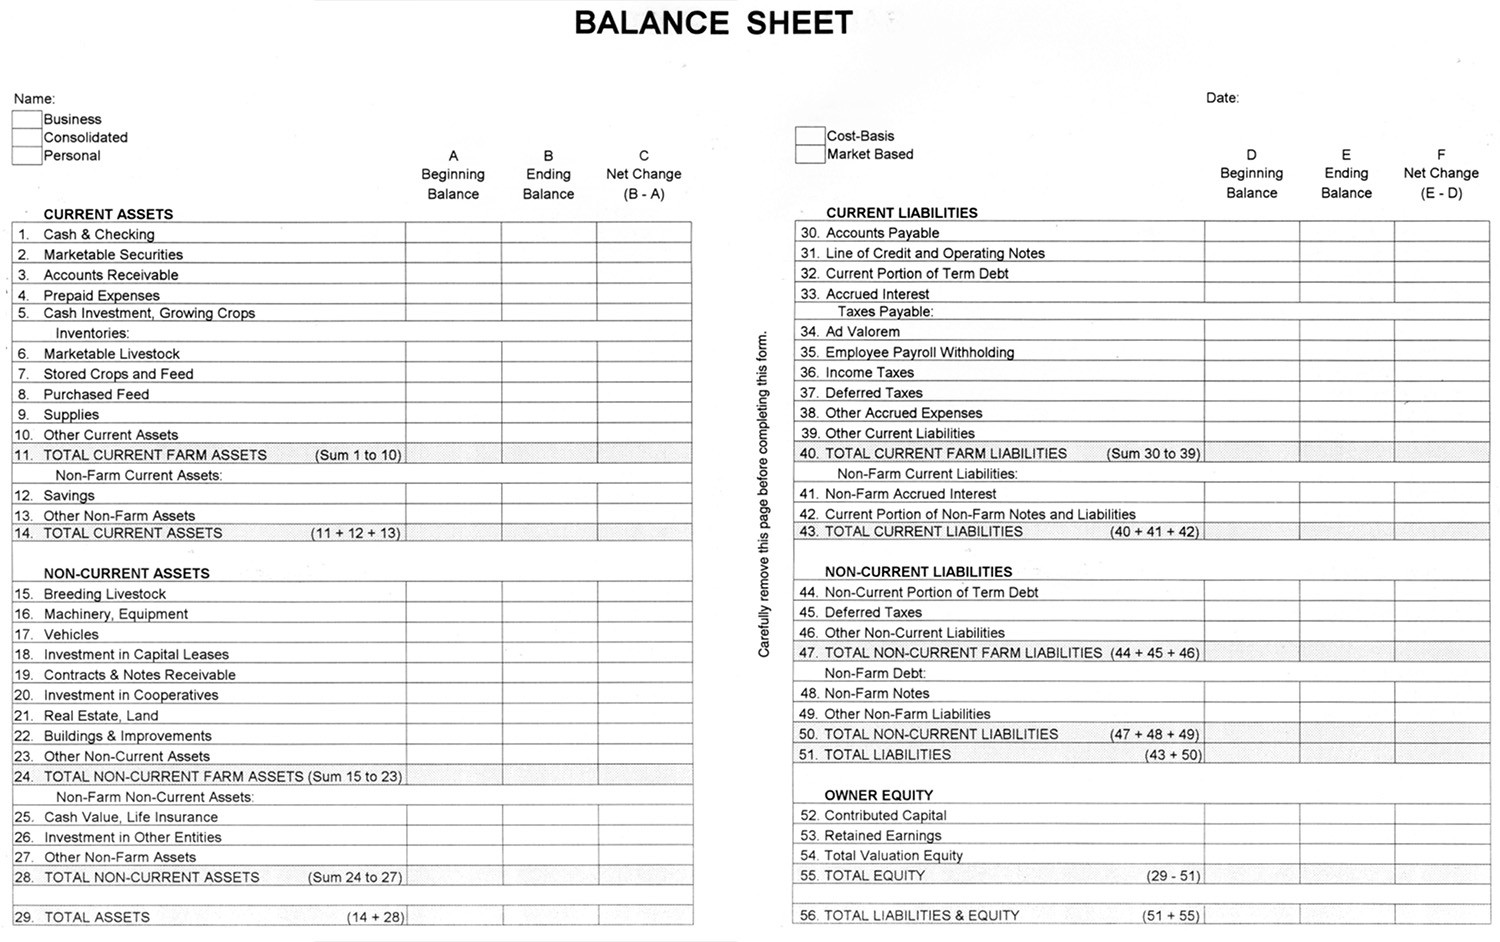 Mothly Bill Payment Balance Sheet Blank